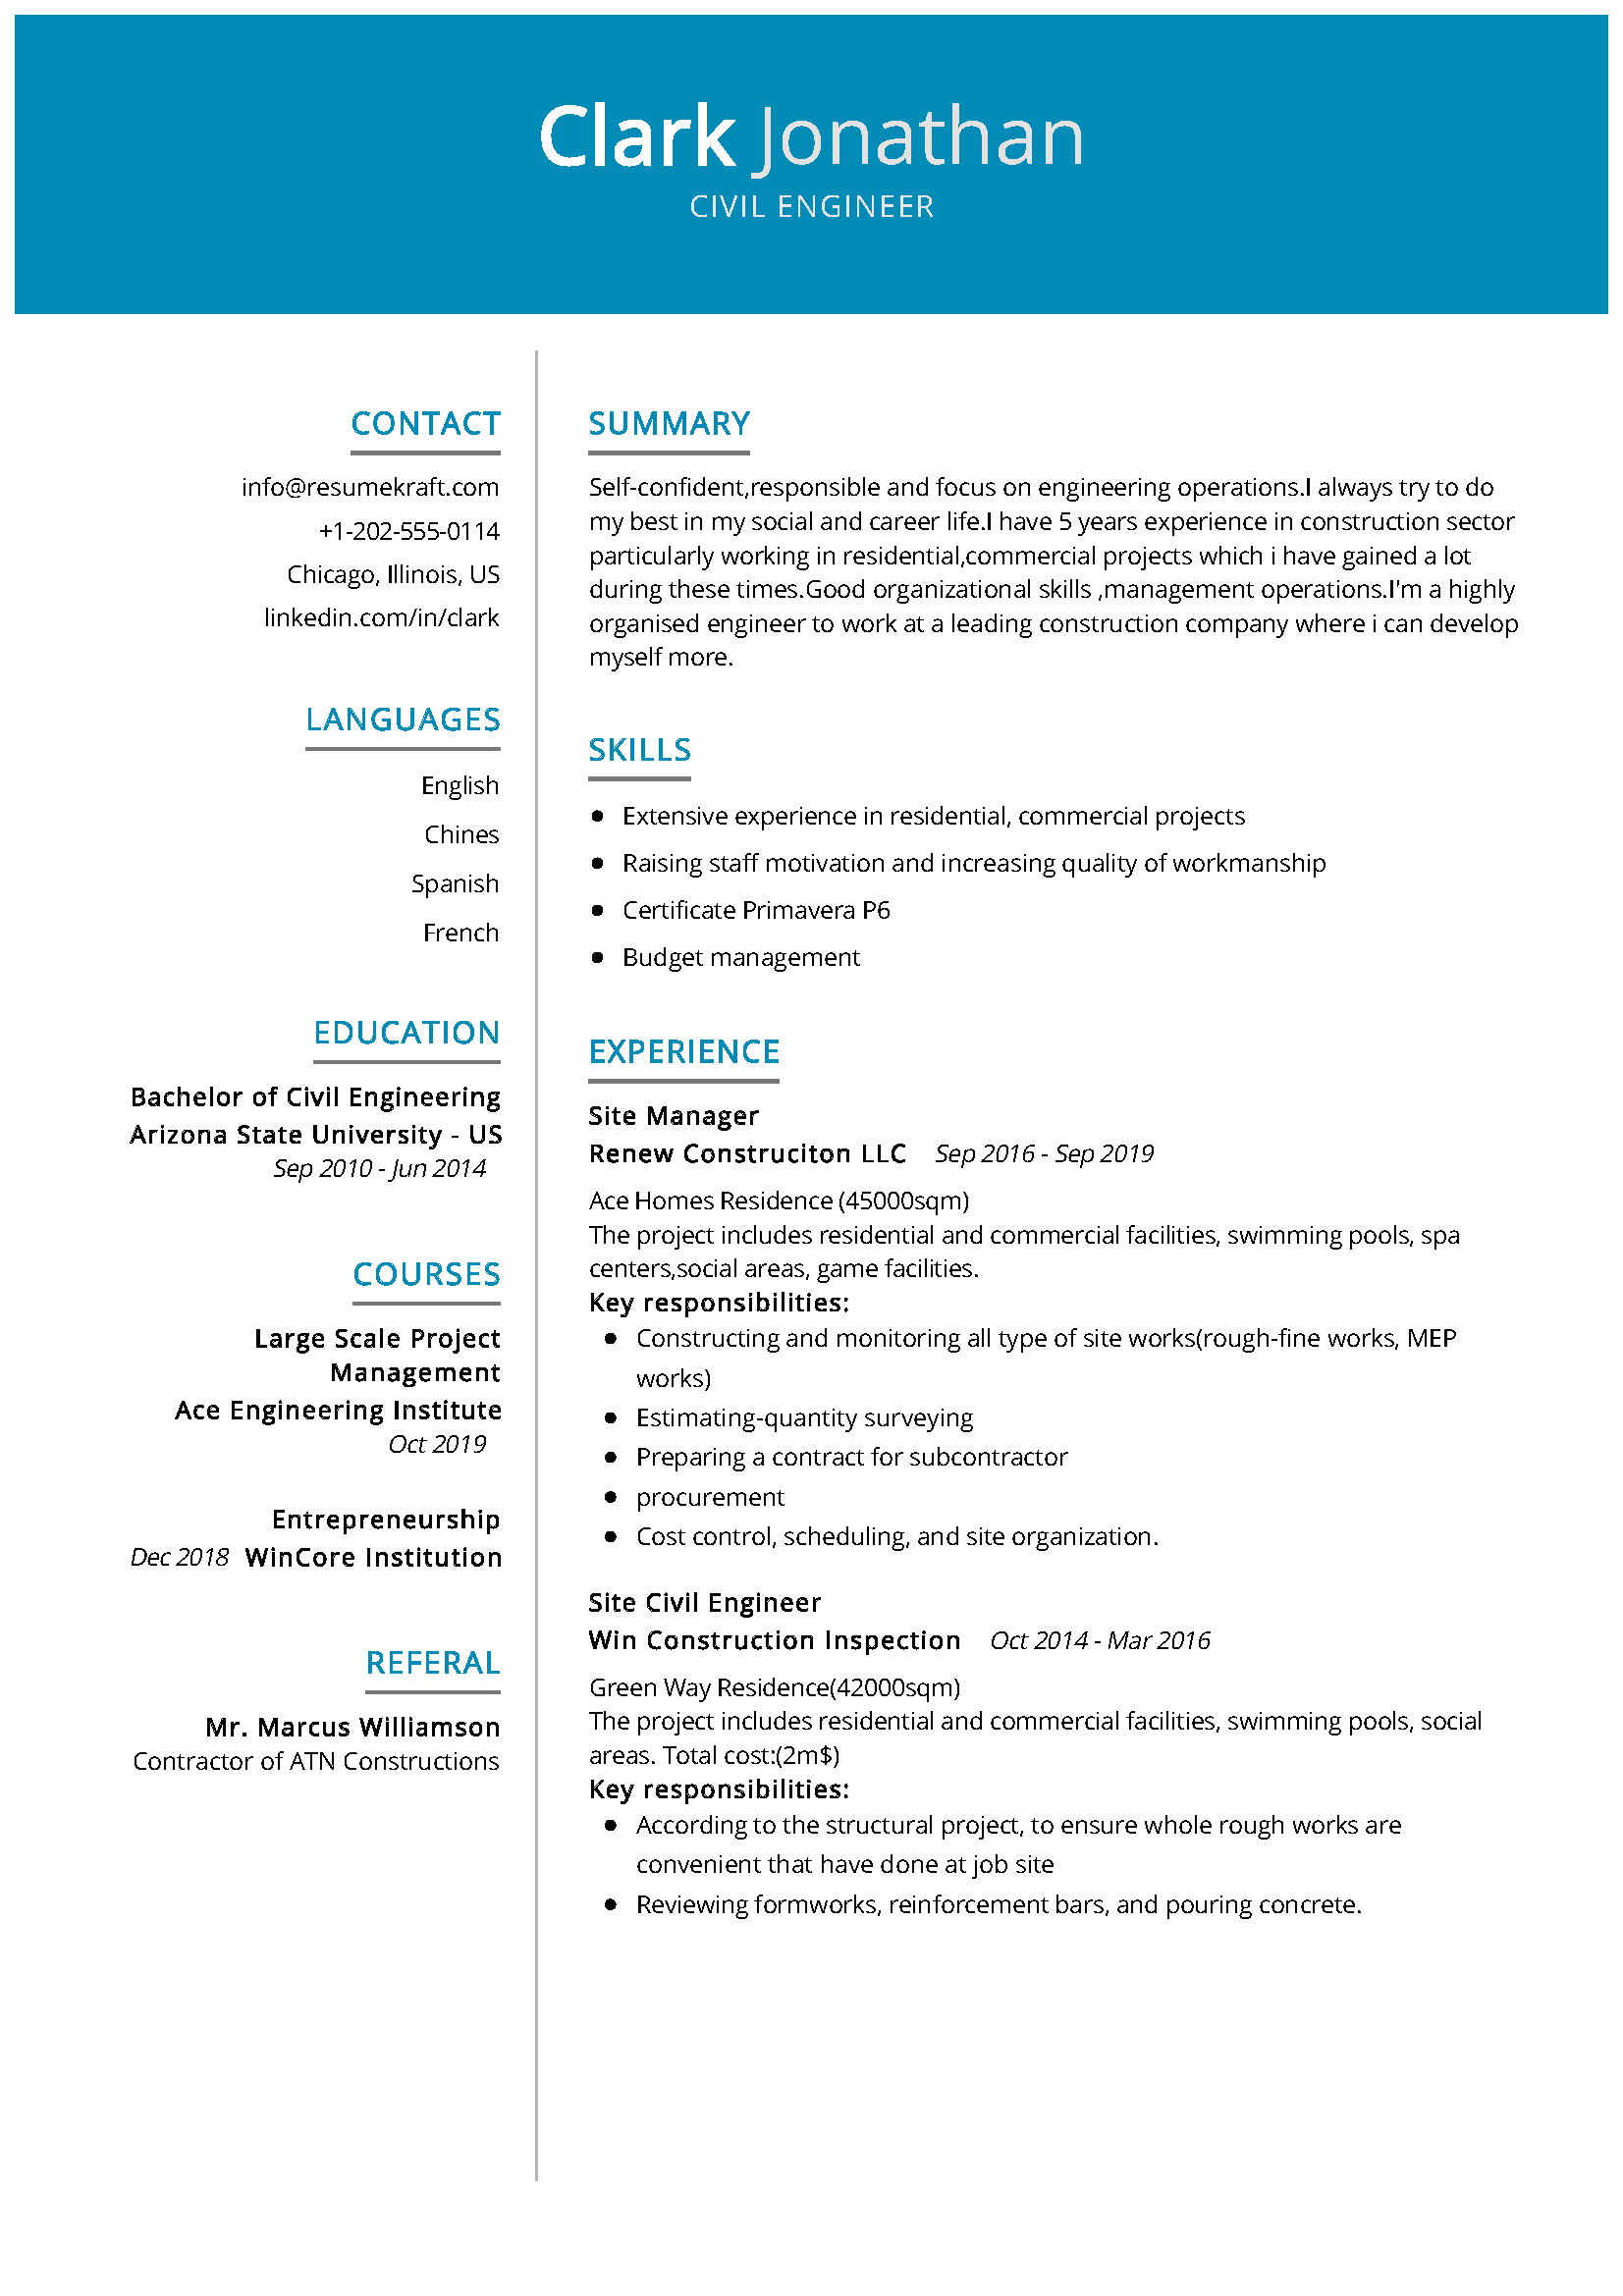 Civil Engineer Resume Civil engineer resume, Engineering